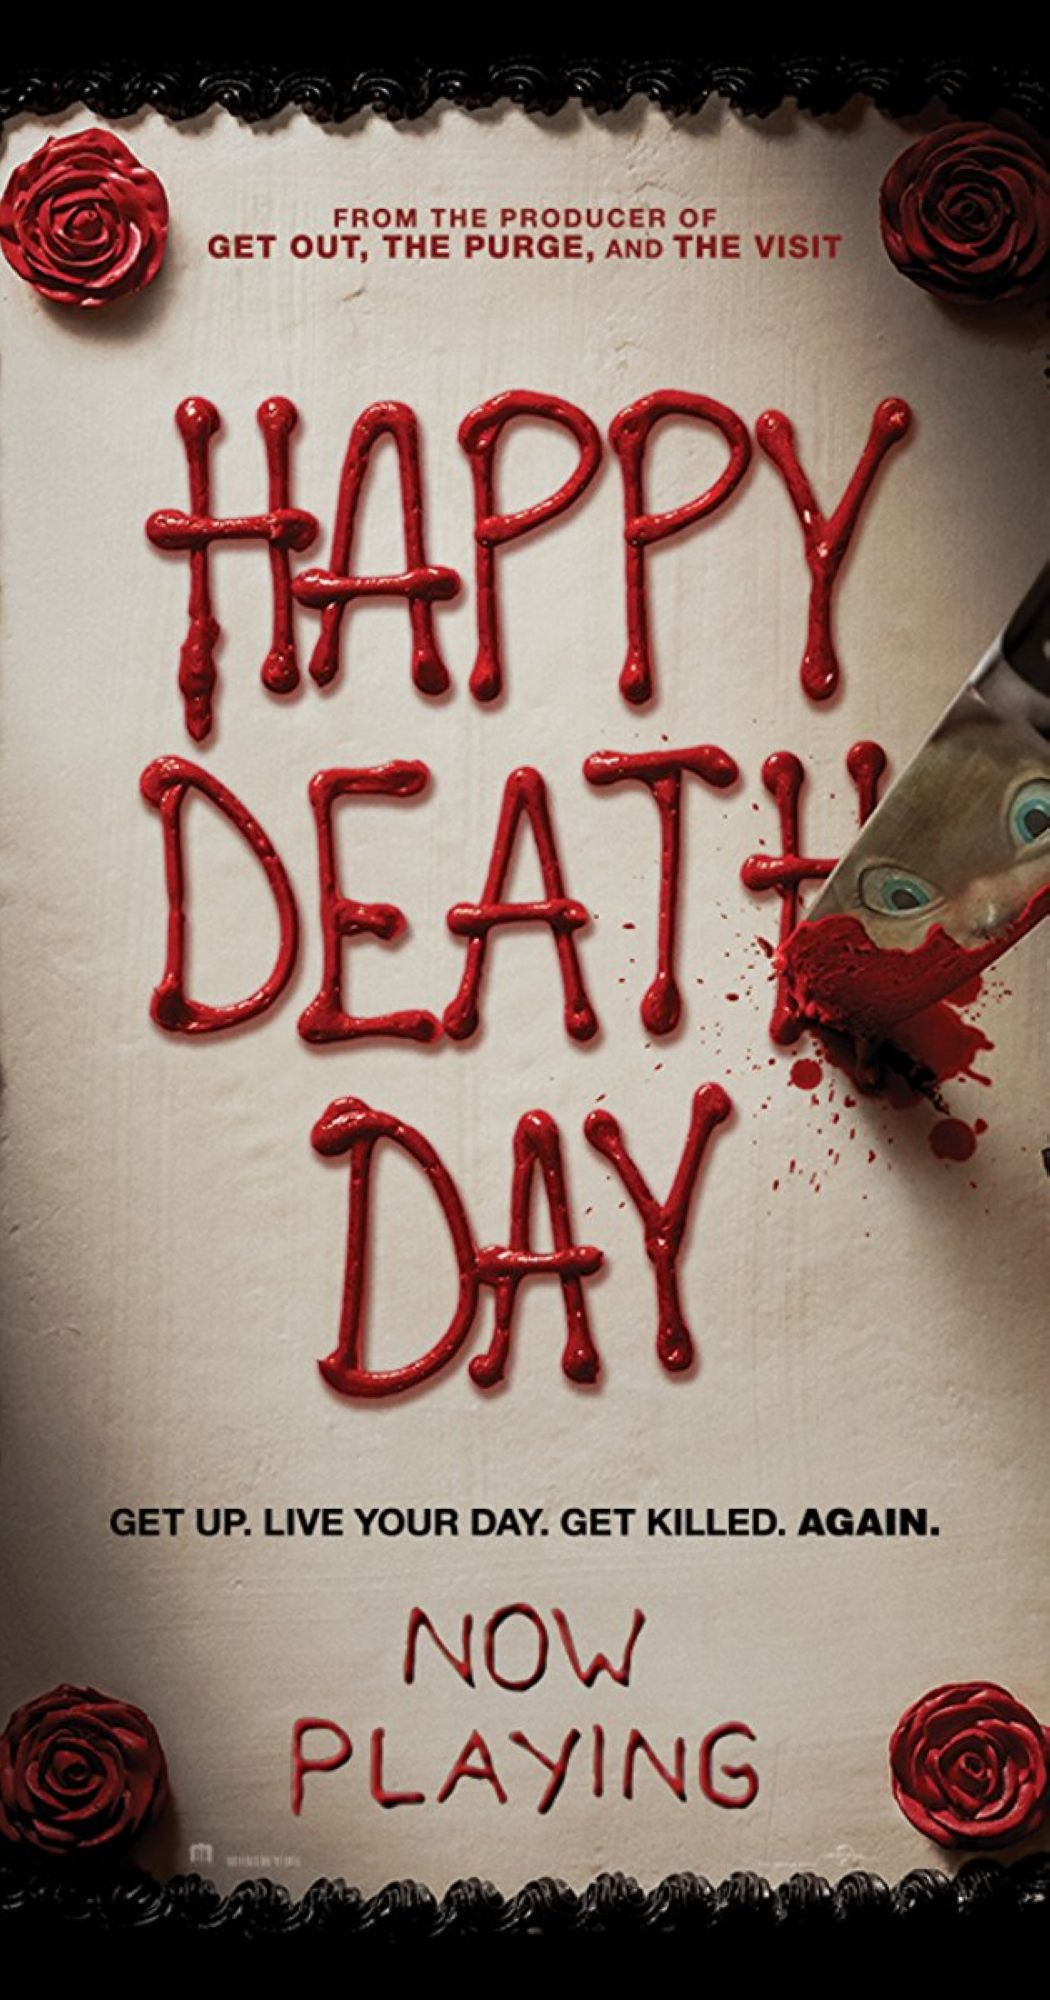 06-Happy-Death-Day-Poster_1